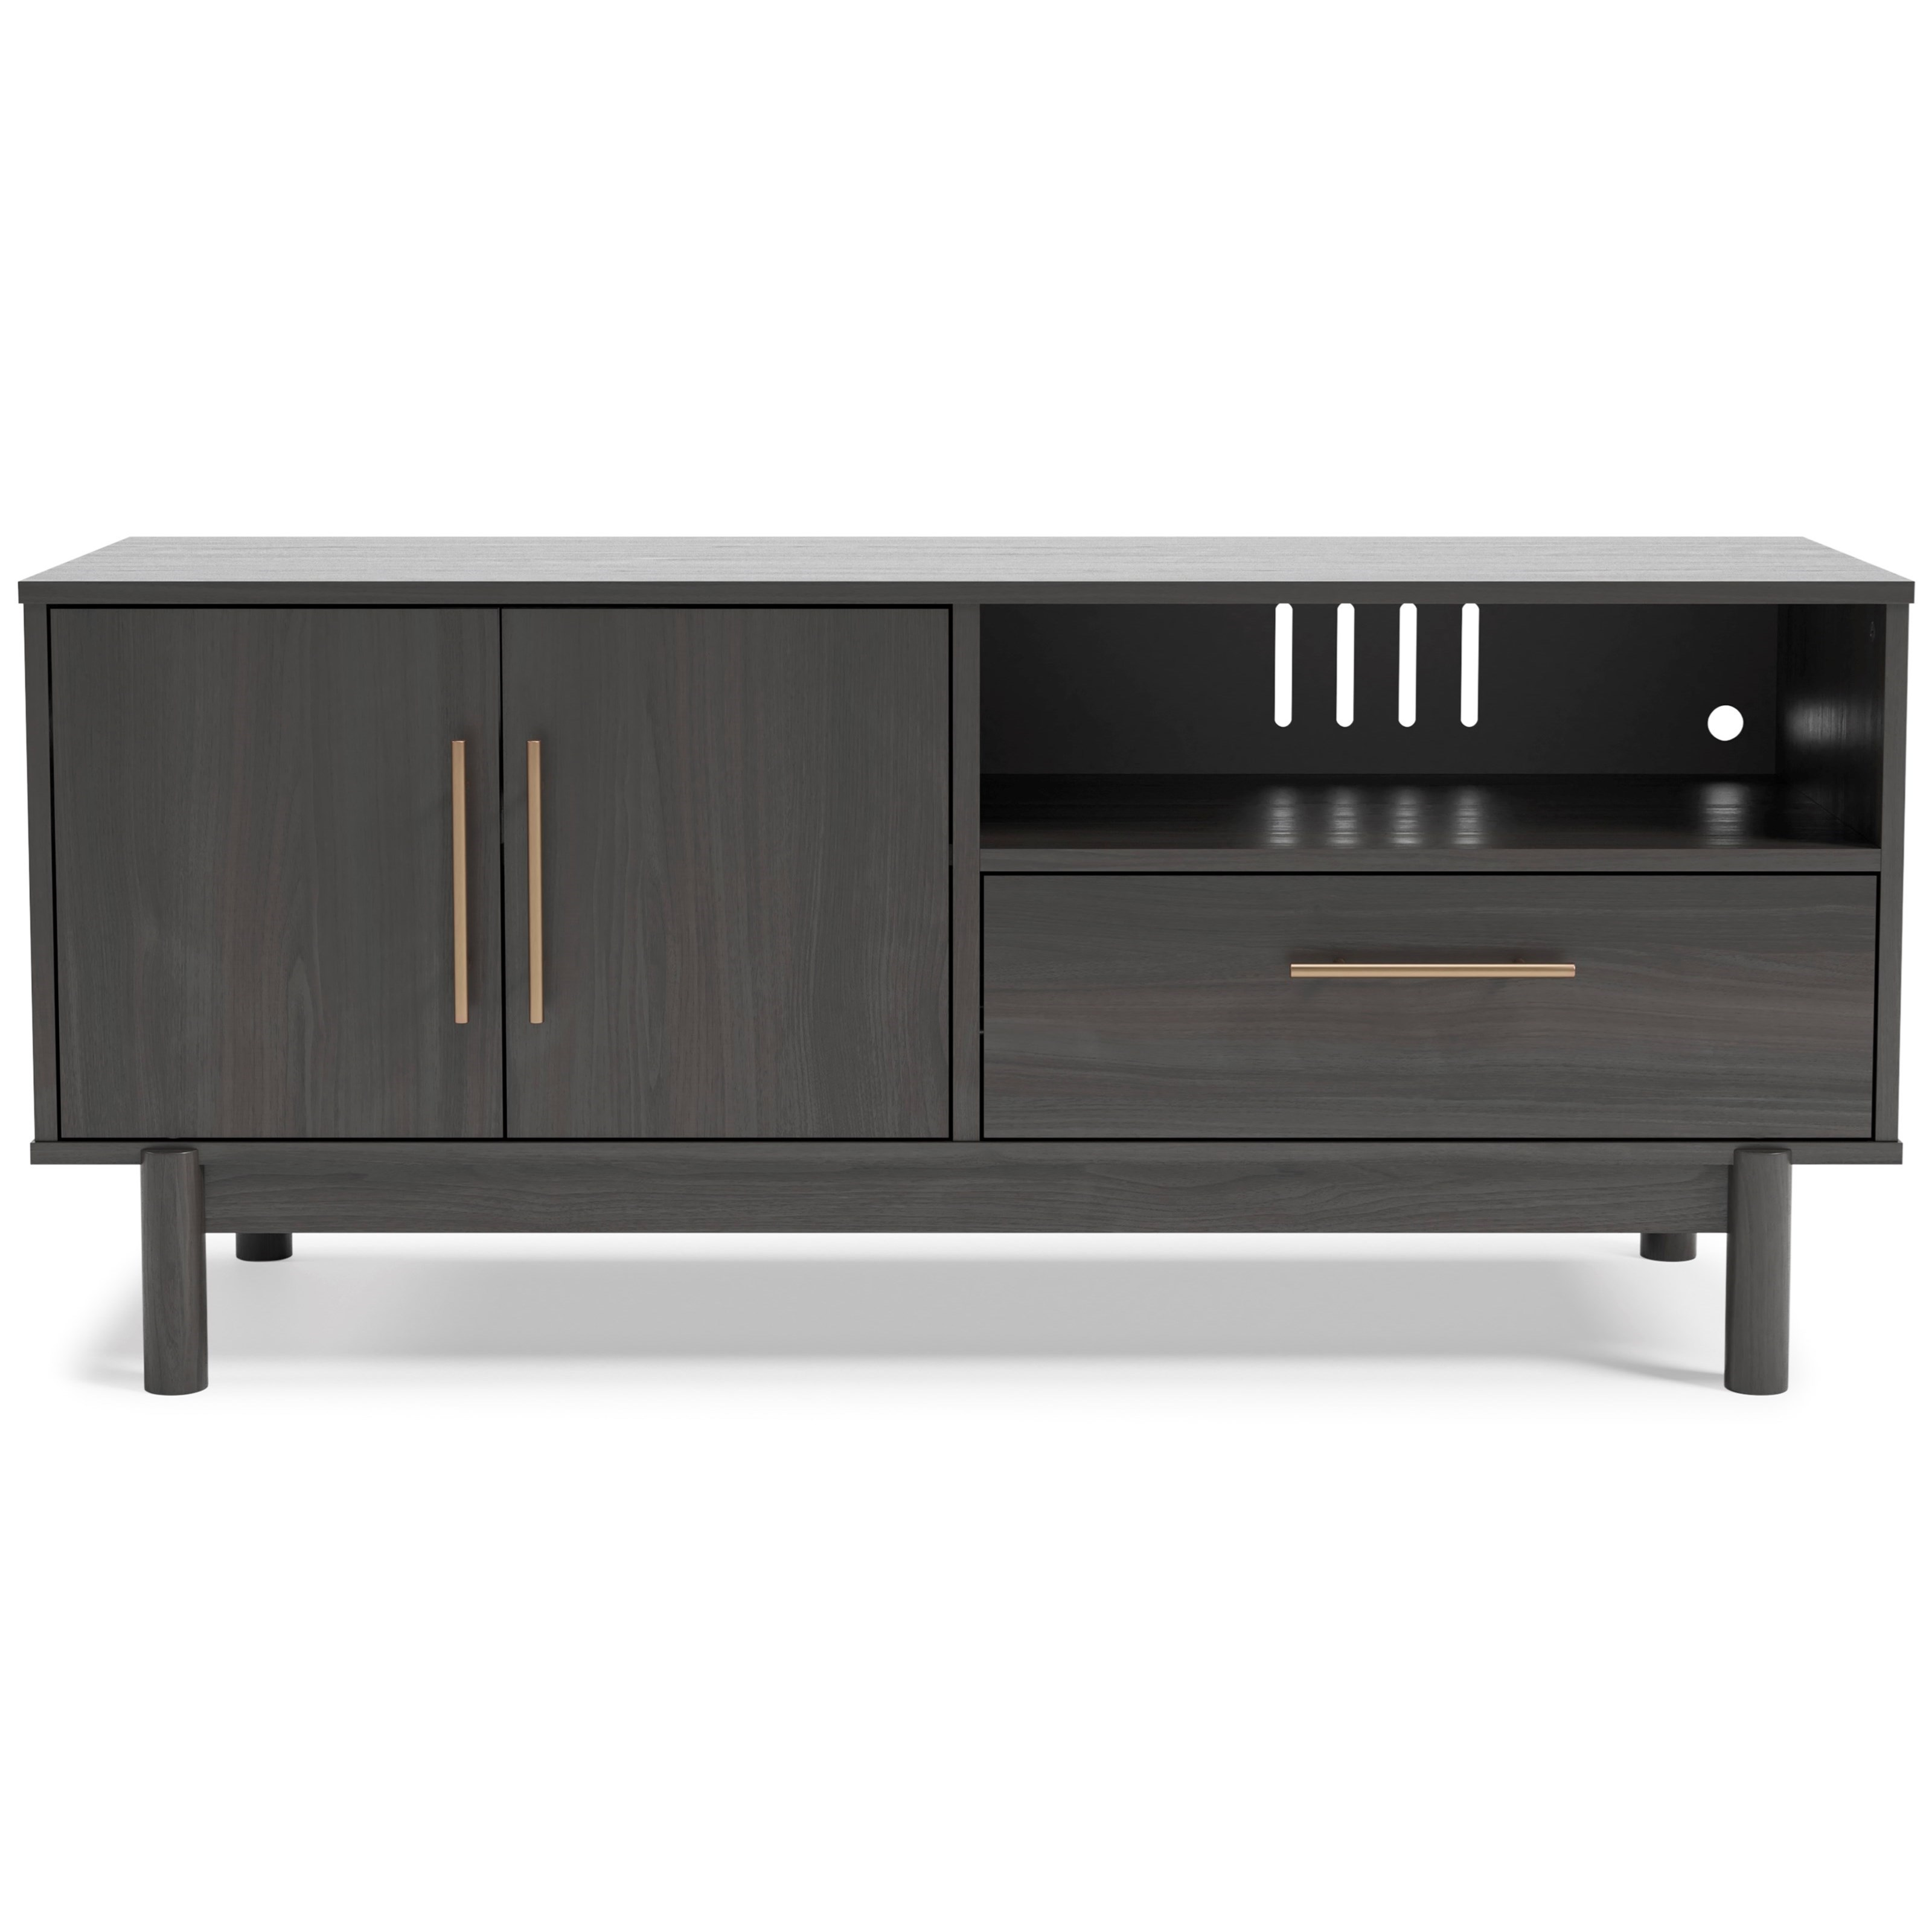 Brymont Medium TV Stand by Signature Design by Ashley at Standard Furniture